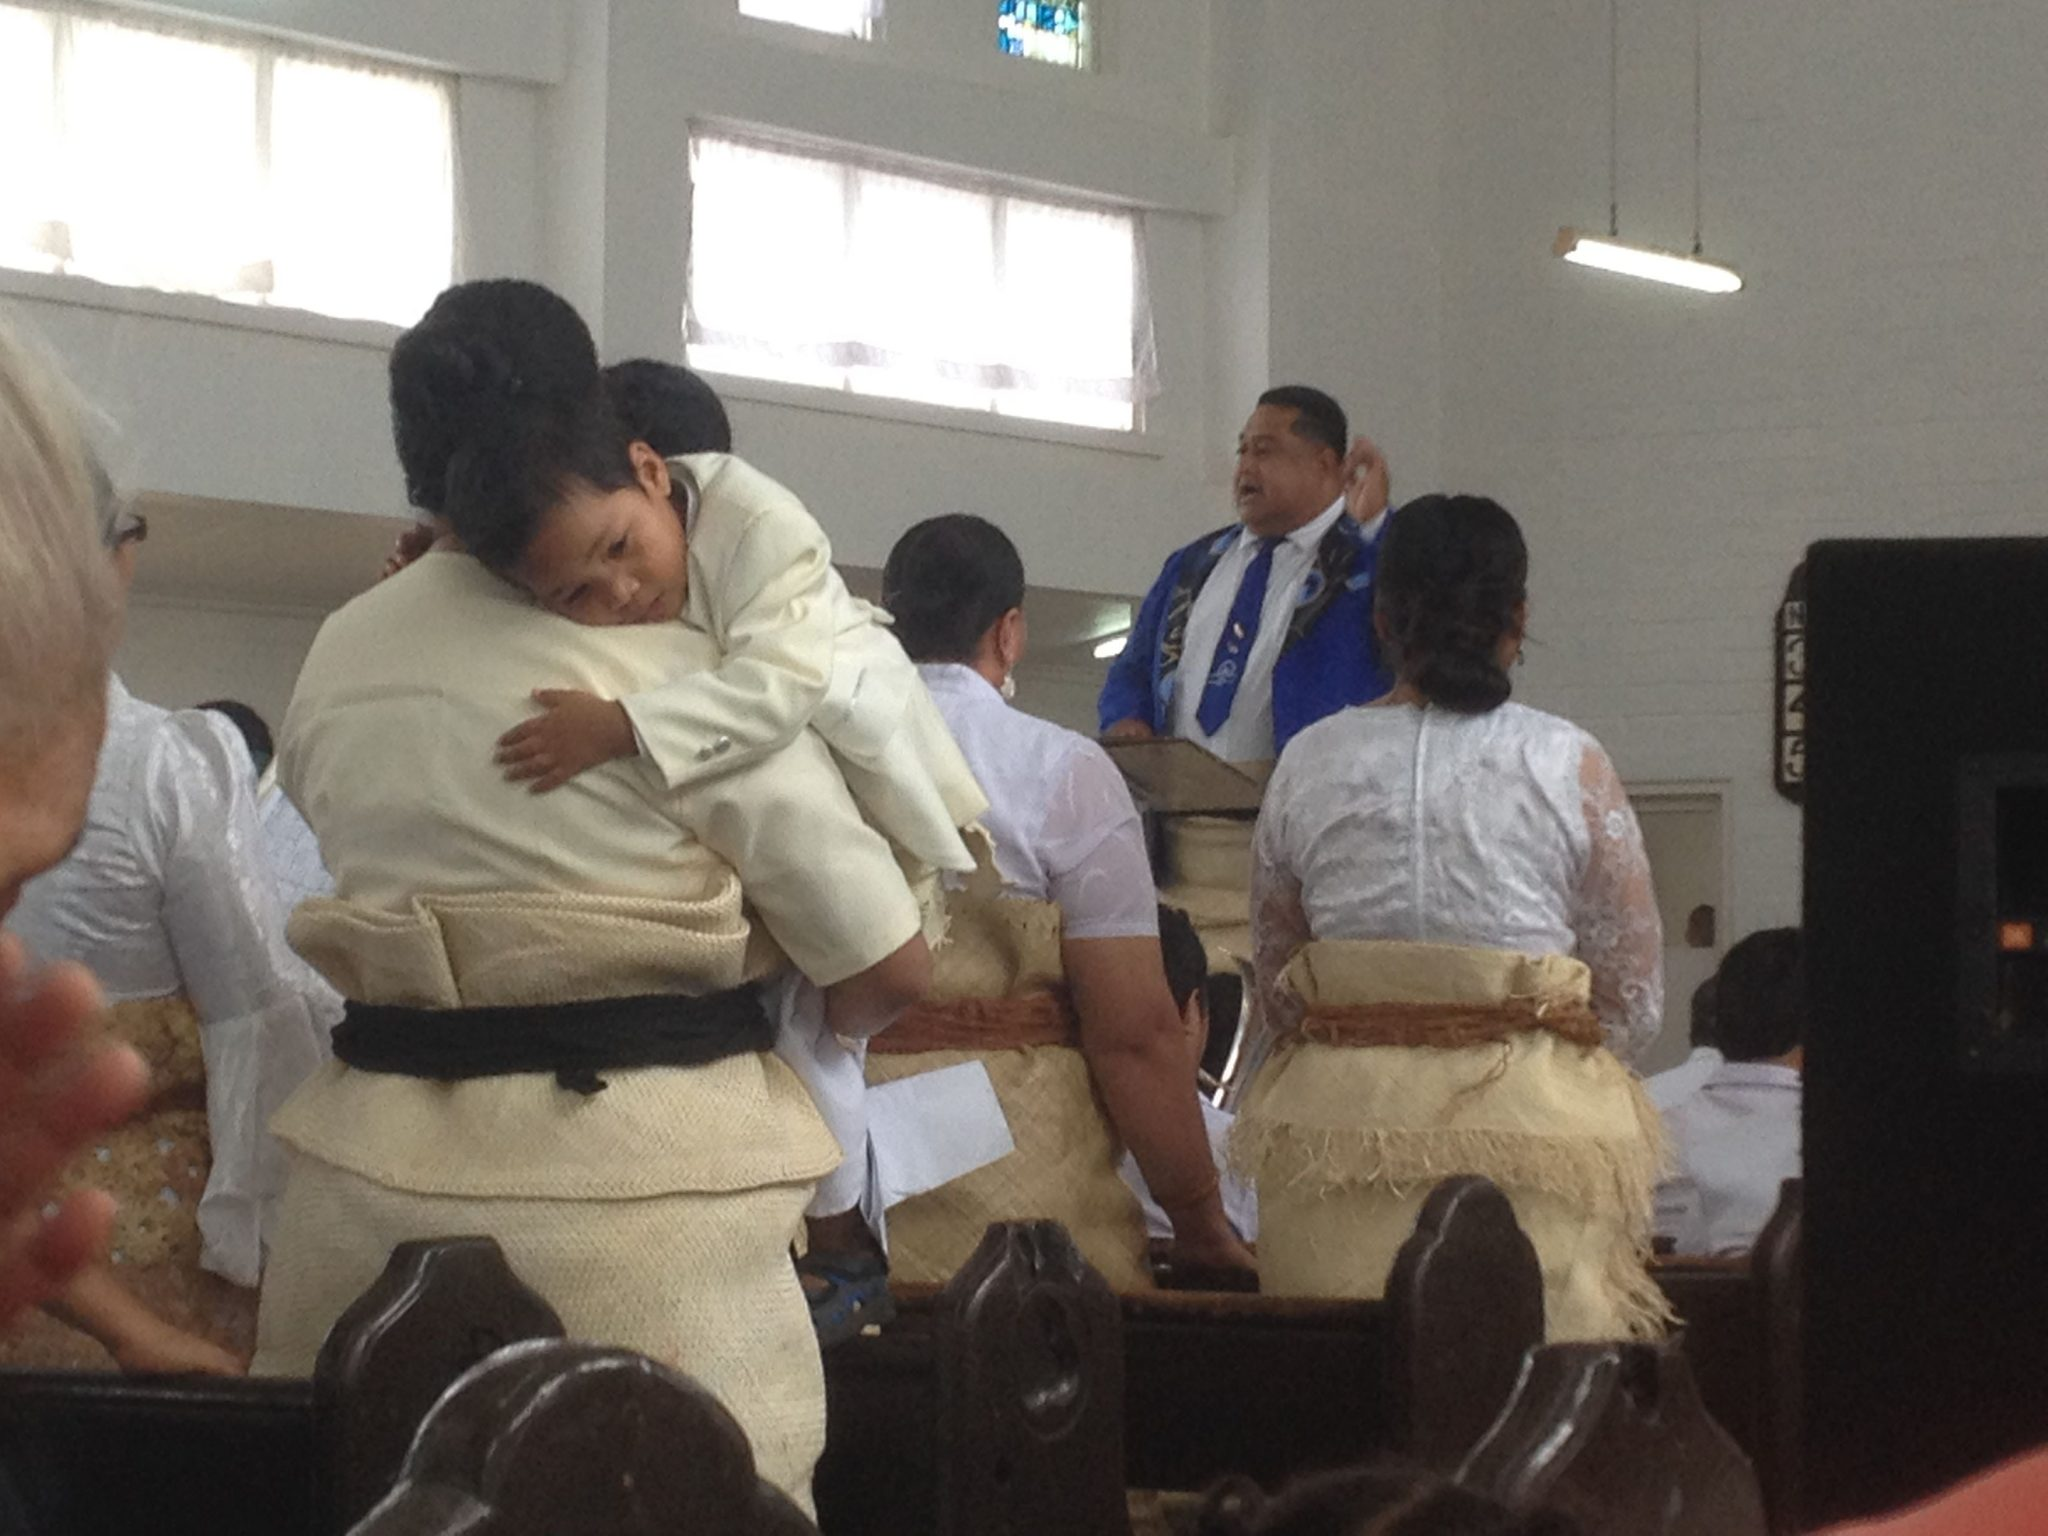 9. The young lad became sleepy and his mother, a member of one of the choirs, came to the rescue! Tongan men and women, children and teens chose to show their allegience to the crown of Tonga by wearing the traditional woven wrap